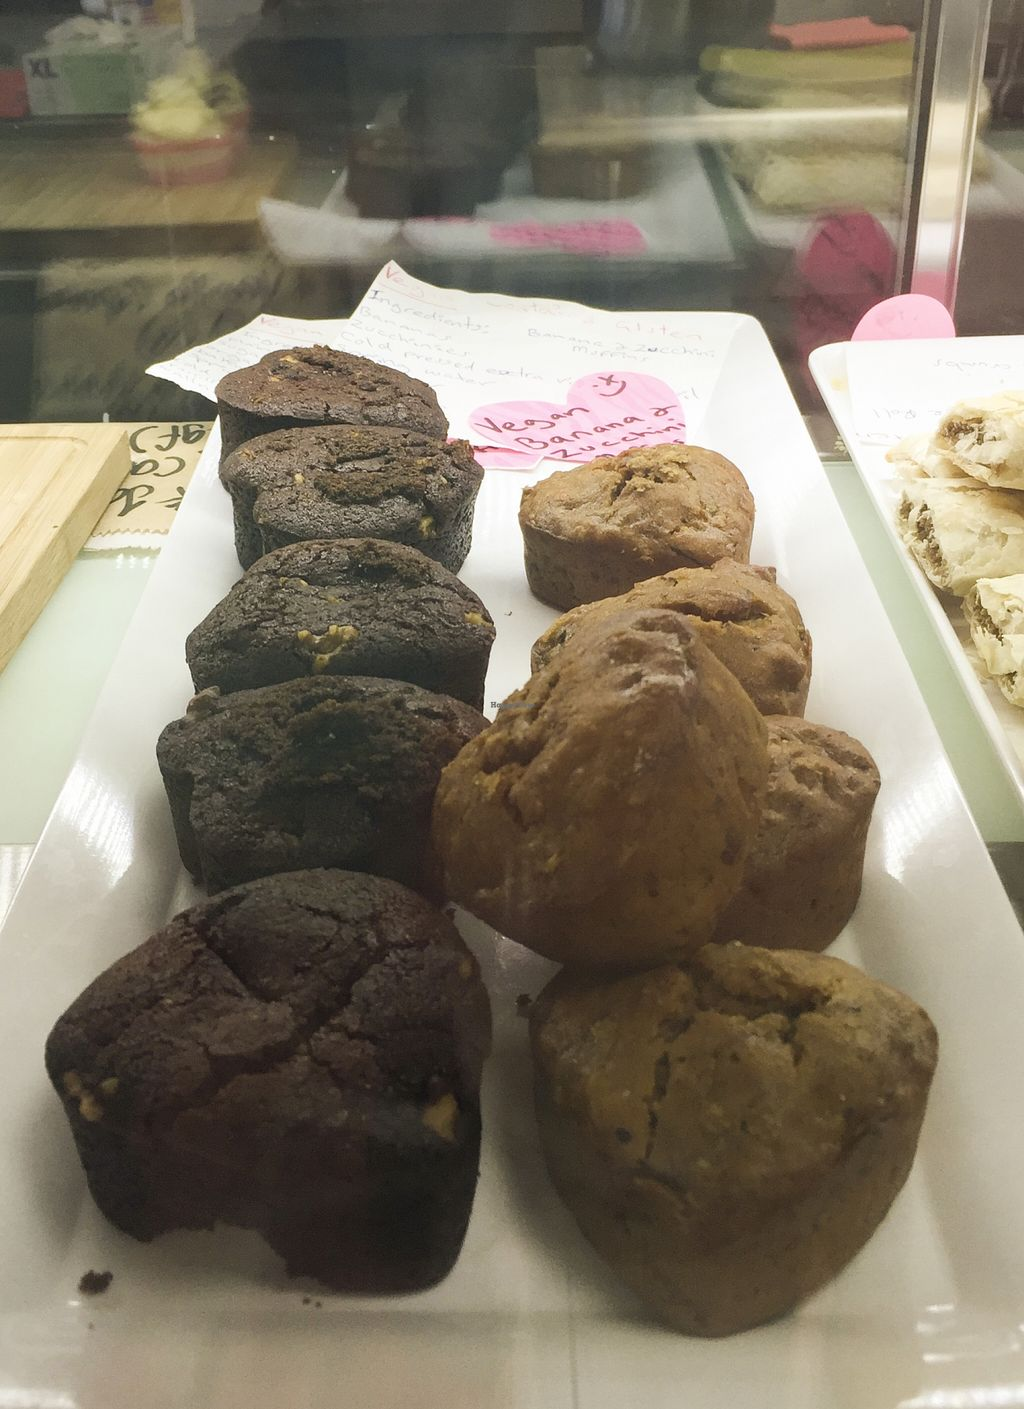 """Photo of Little Sheepish  by <a href=""""/members/profile/karlaess"""">karlaess</a> <br/>Vegan baked goods <br/> November 28, 2015  - <a href='/contact/abuse/image/65300/126369'>Report</a>"""